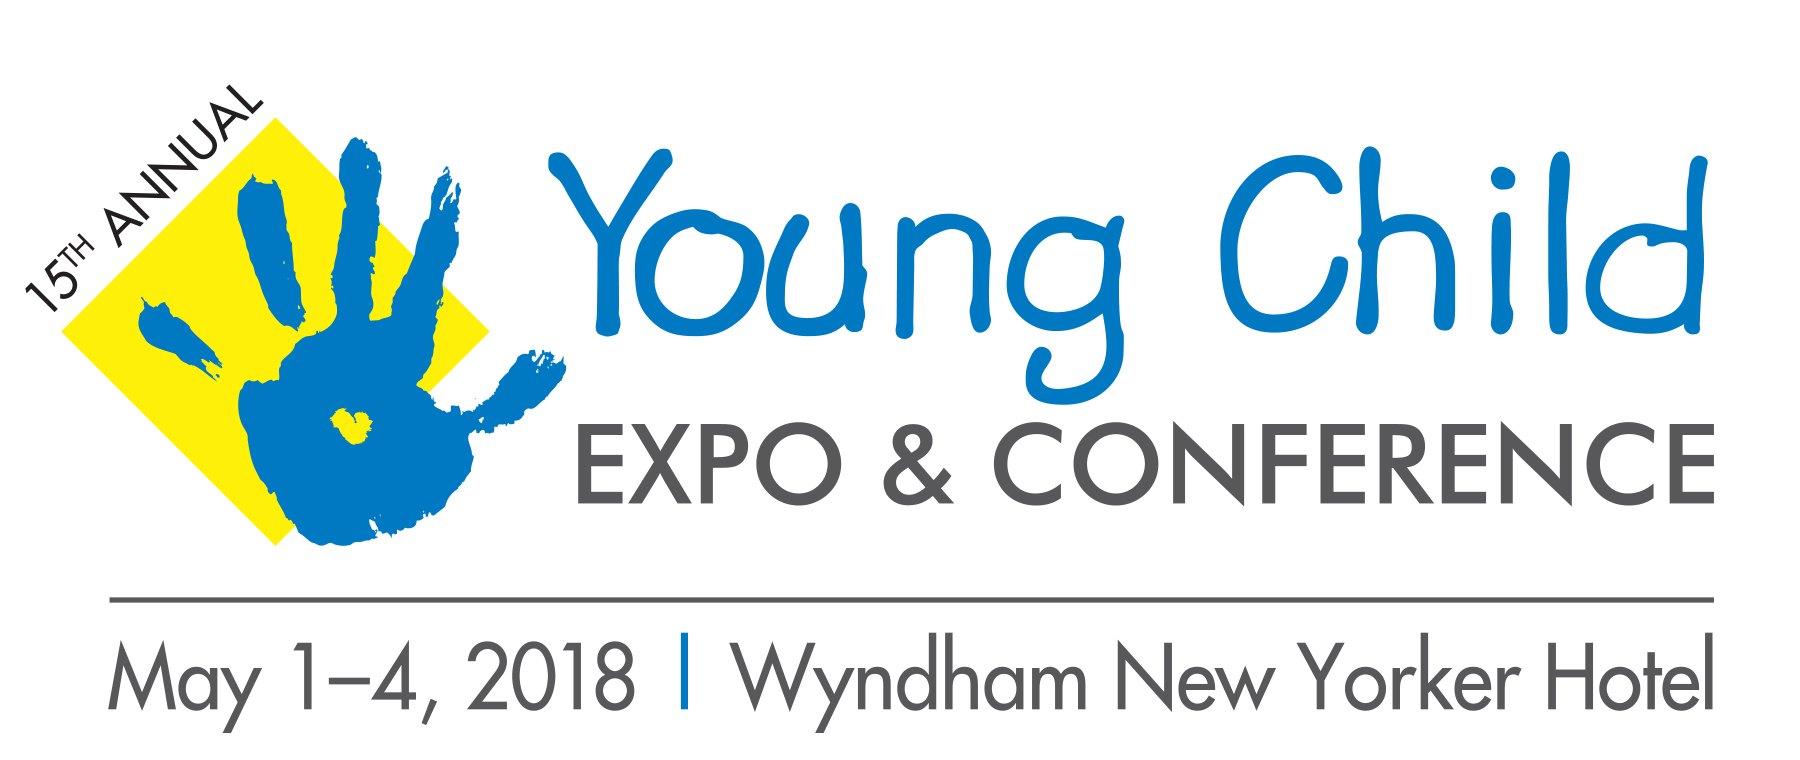 2018 Young Child Expo & Conference NYC